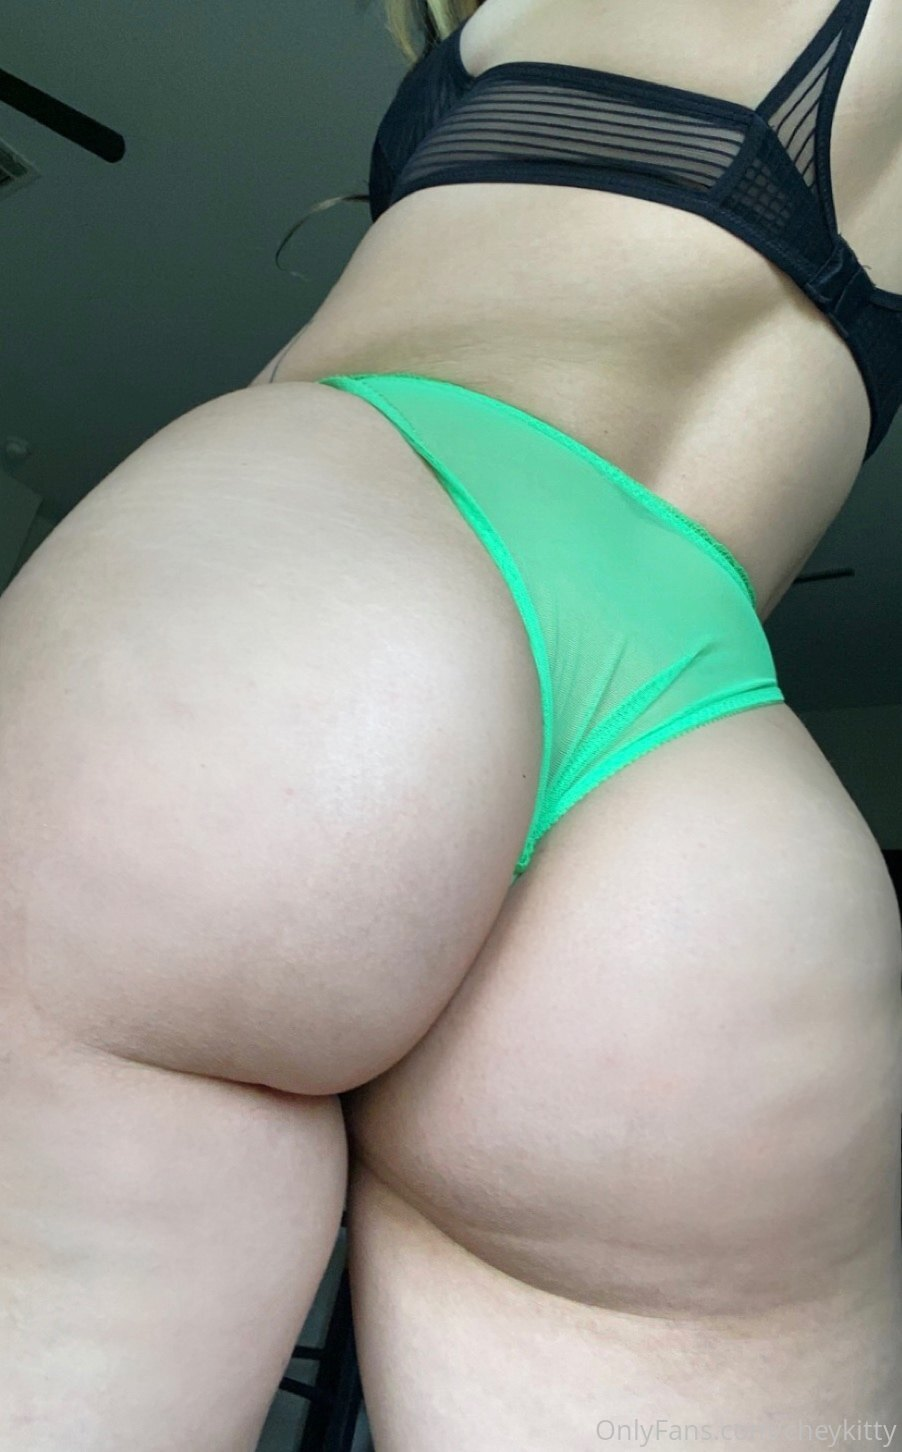 Chey Kitty Porn OnlyFans Leaked Nudes 58